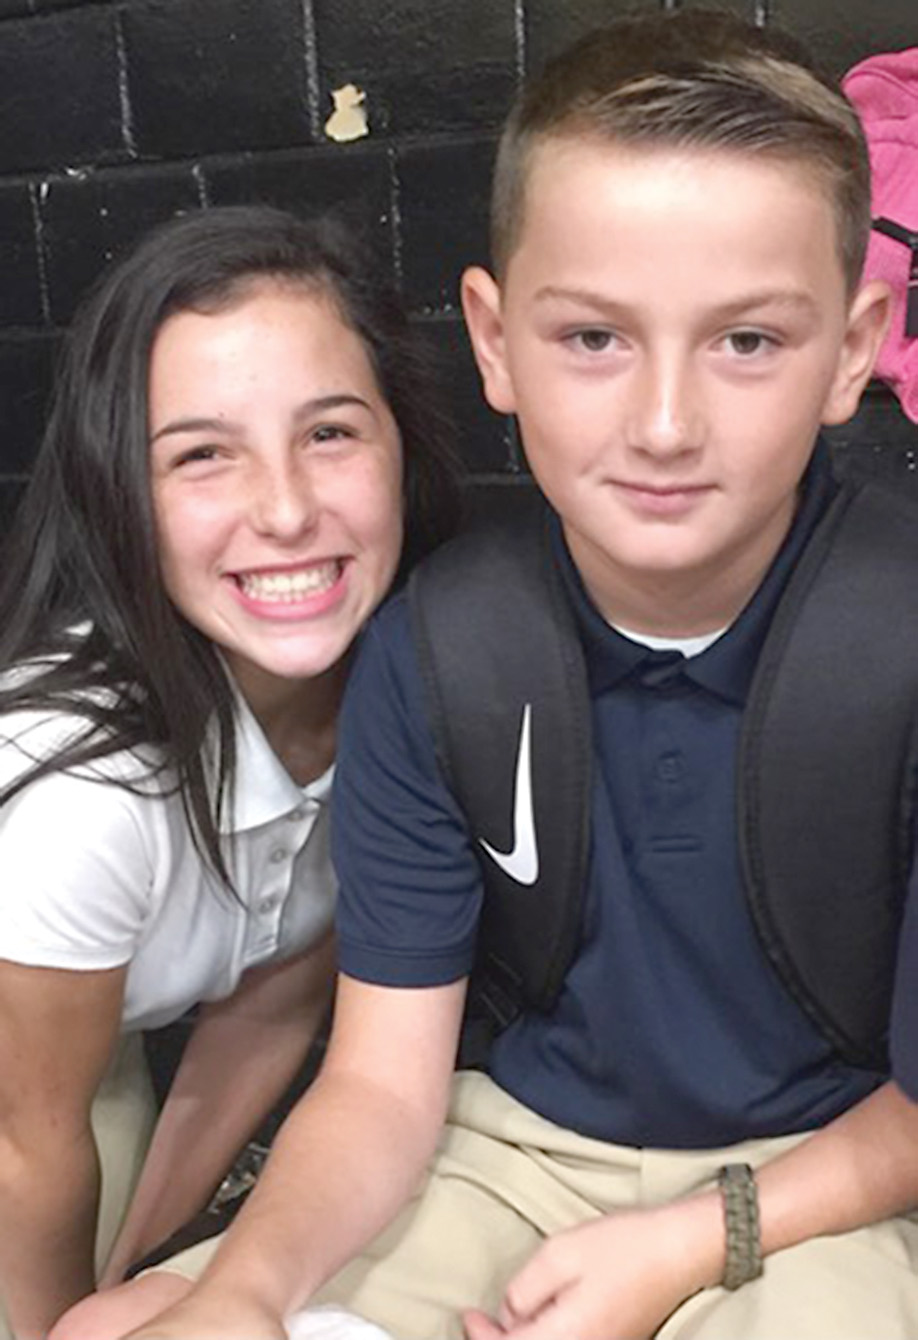 Tinley Durr and Benji Kilgore are all smiles as they enter their first year in the eighth and fifth grades at Marthaville. Parents are Brandon and Dana Durr and Benny and Jodi Kilgore.